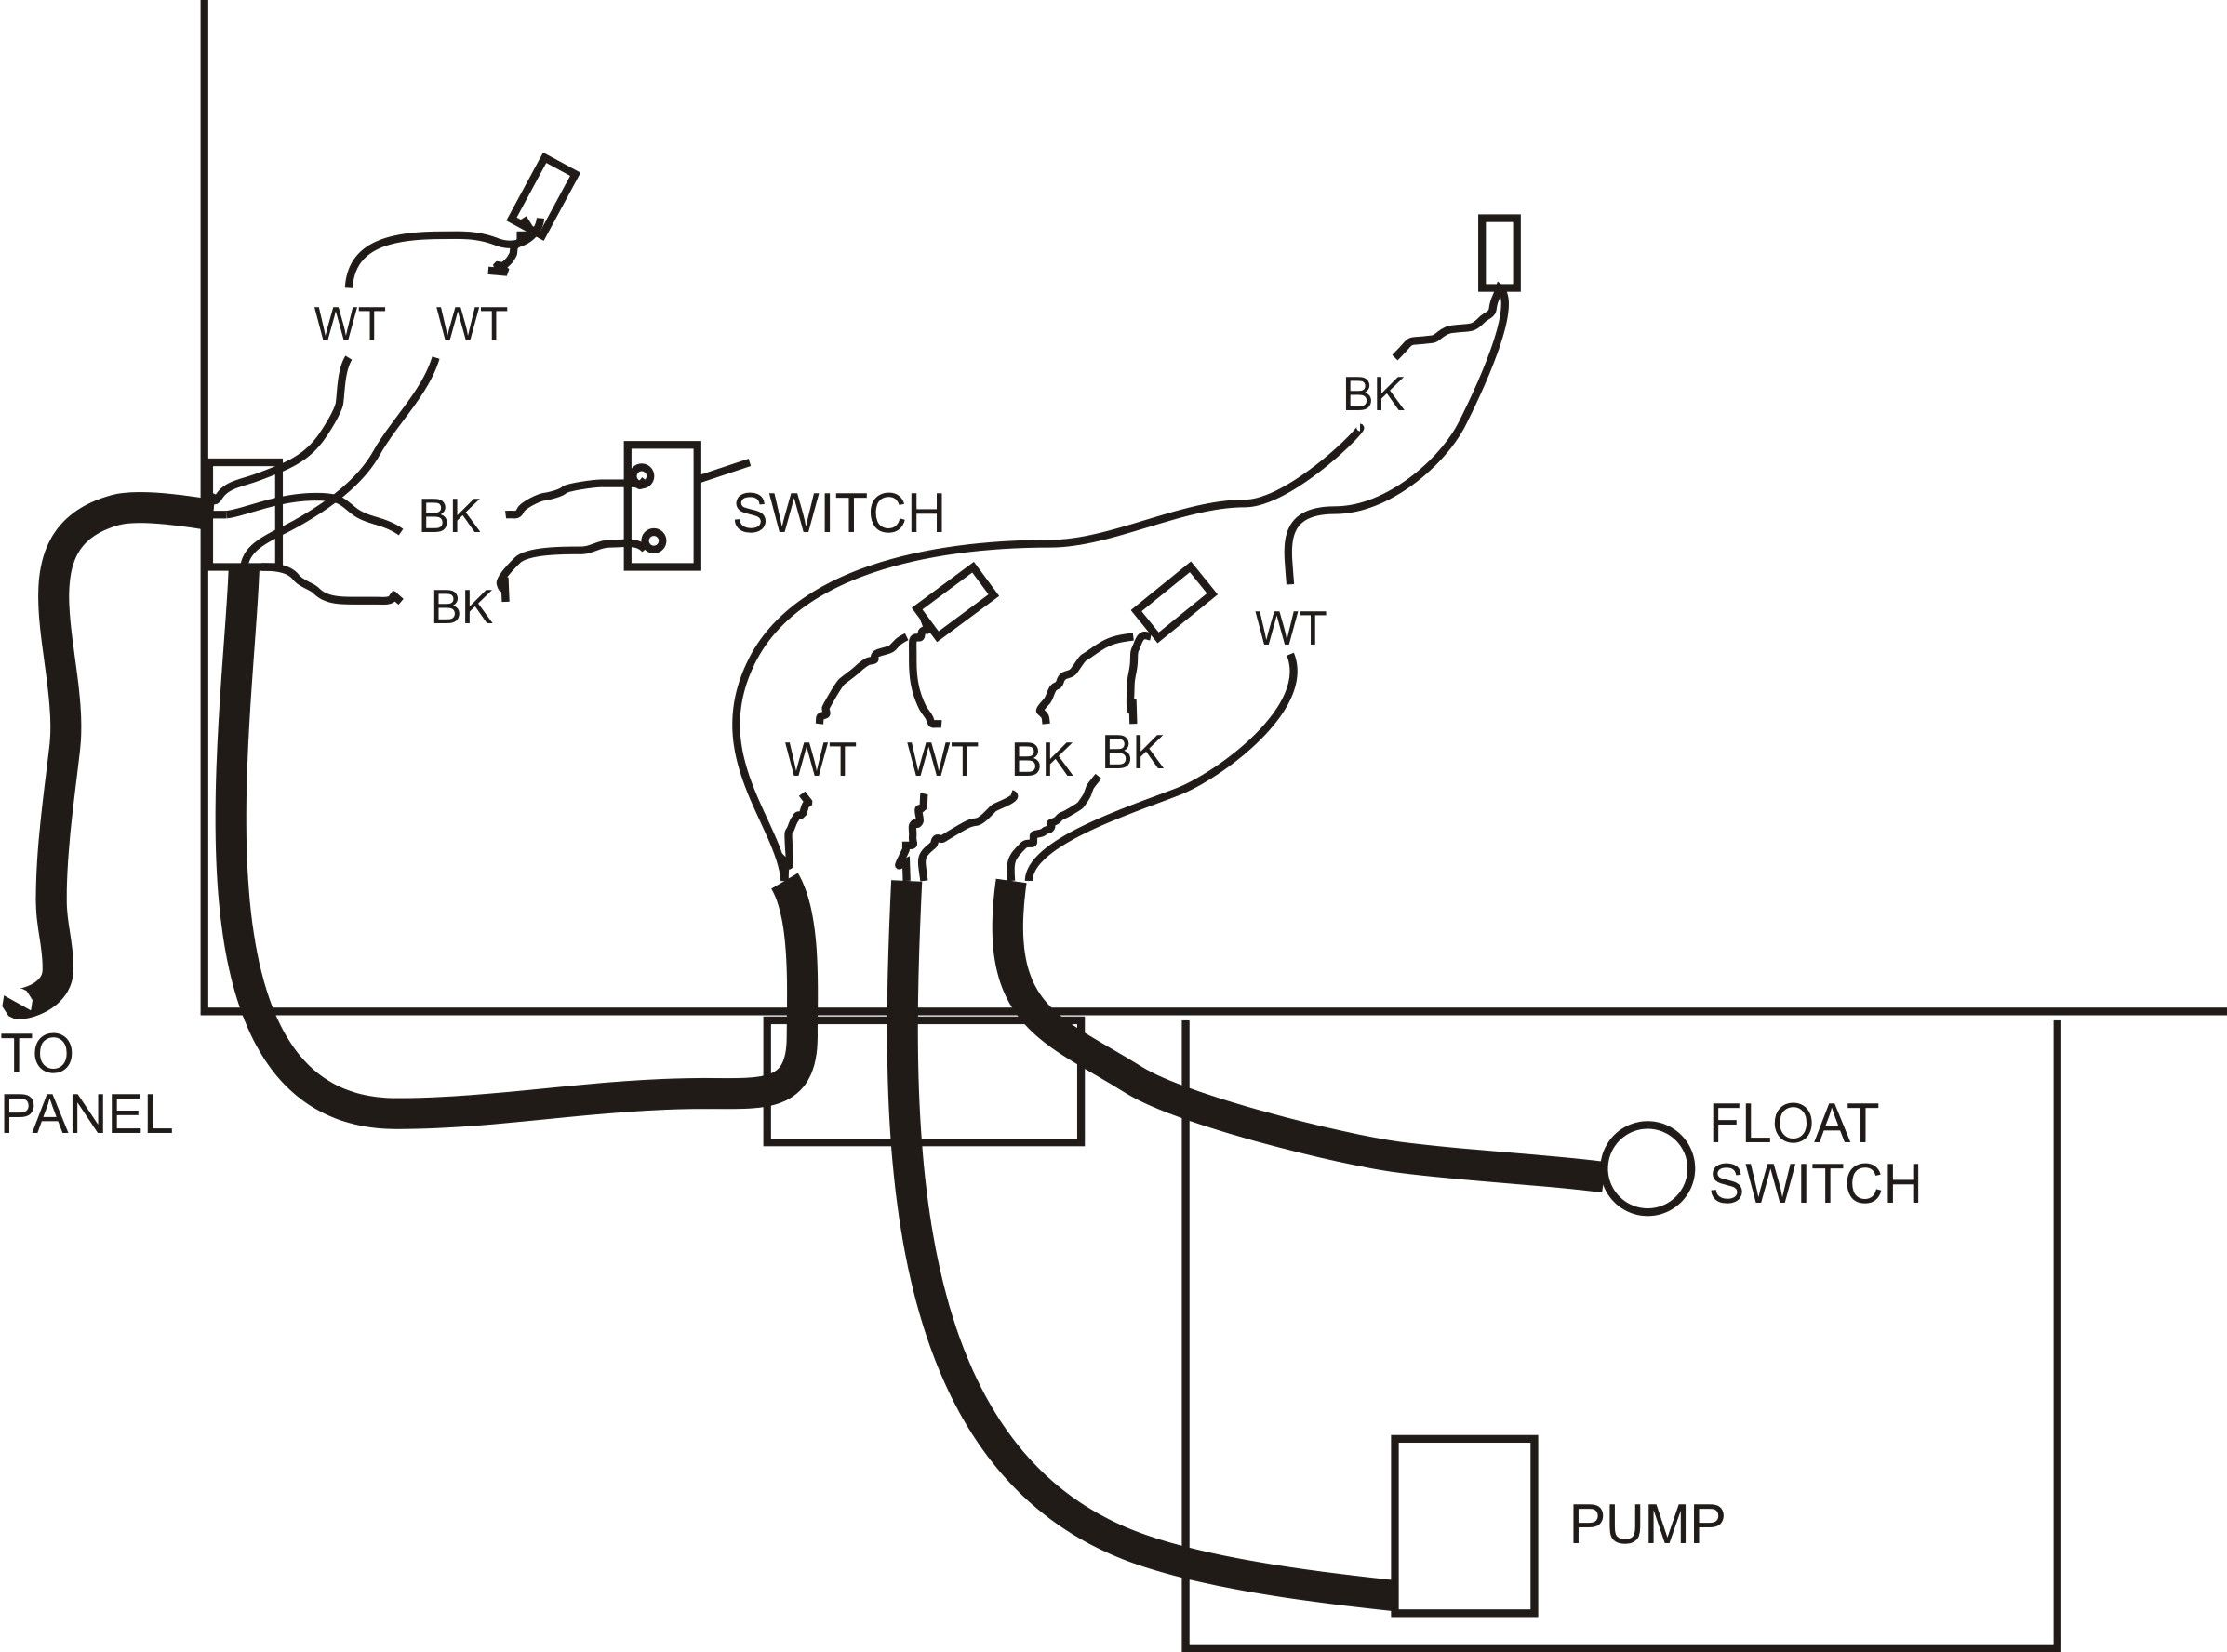 medium resolution of septic pump wiring diagram wiring diagram user septic pump float switch wiring